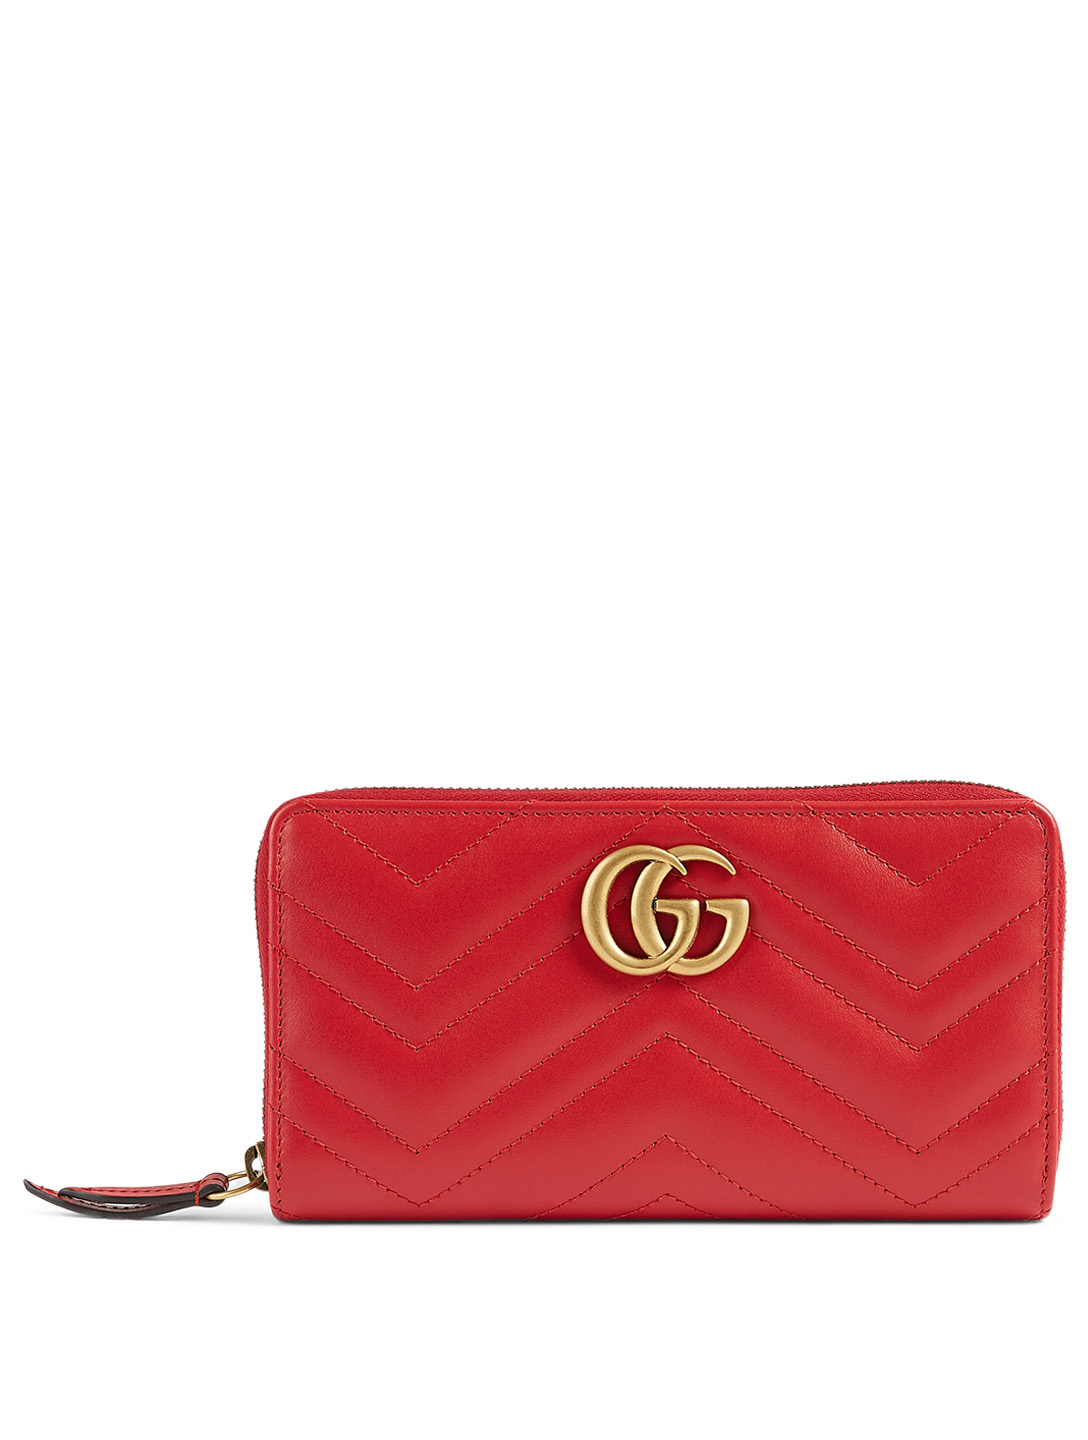 GUCCI GG Marmont Matelassé Leather Wallet Women's Red